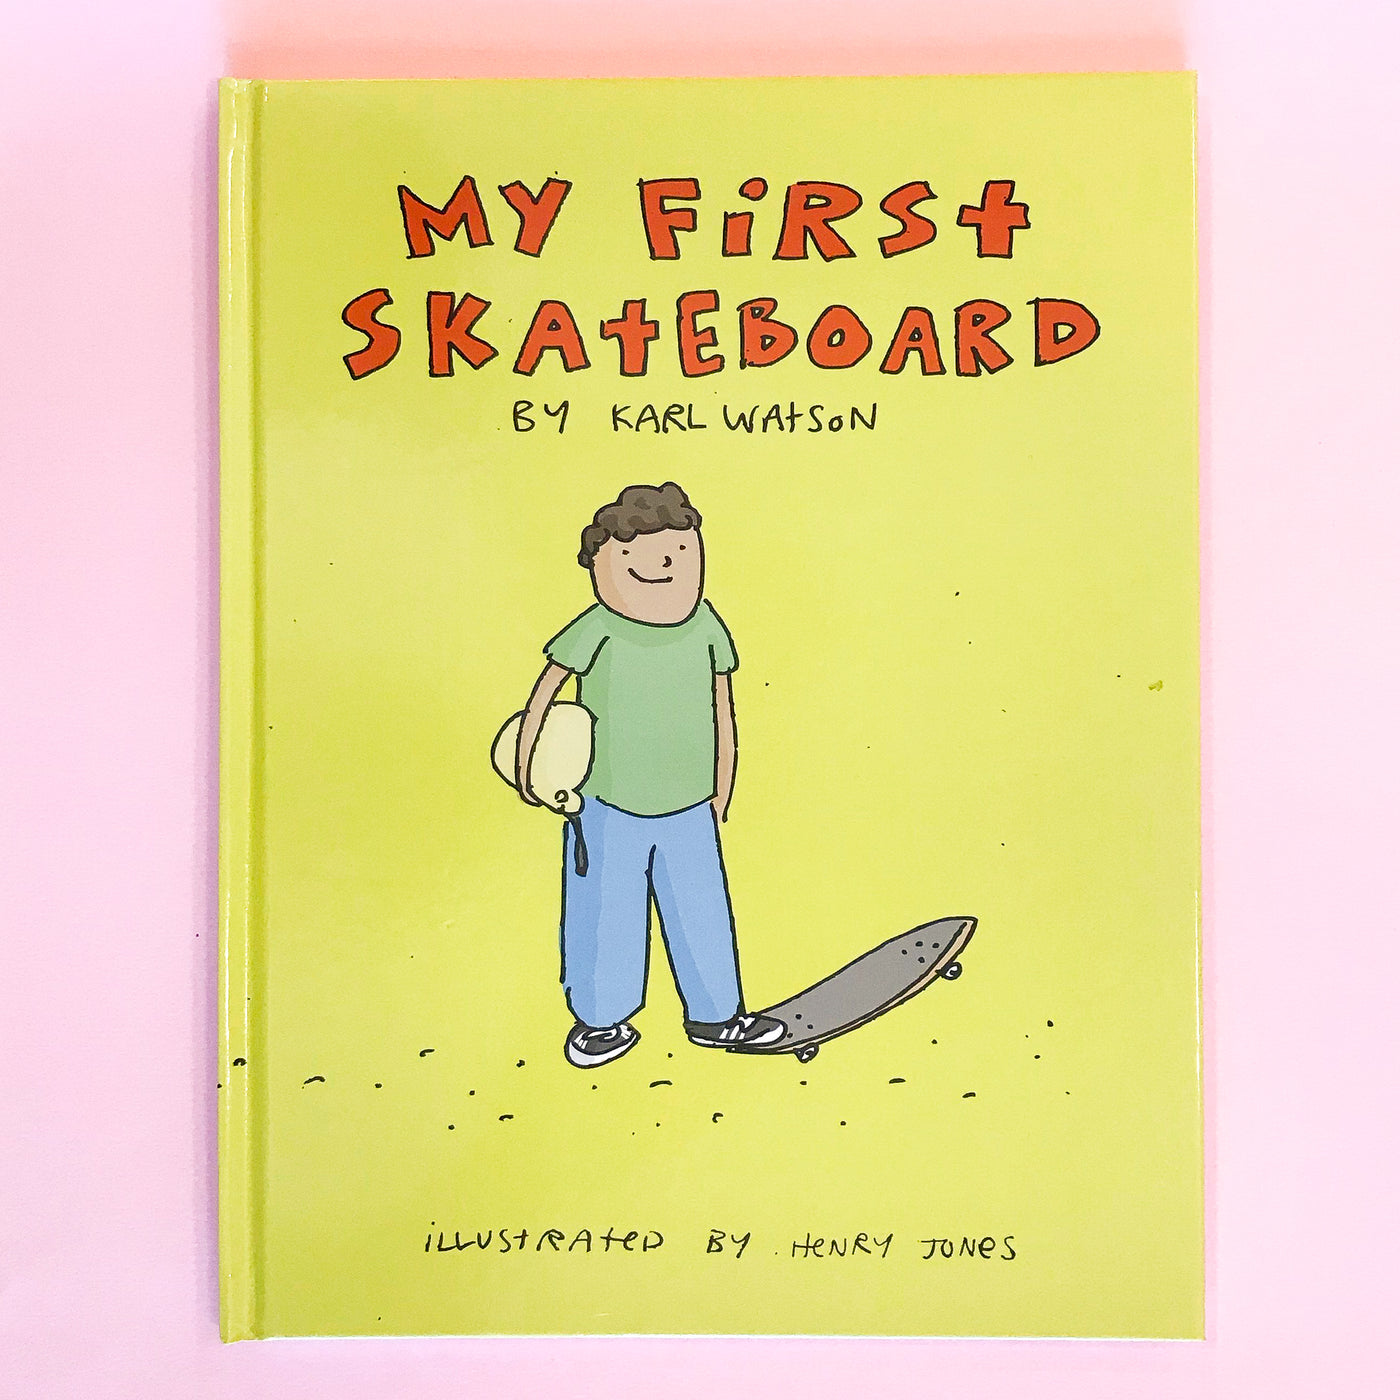 My First Skateboard by Karl Watson